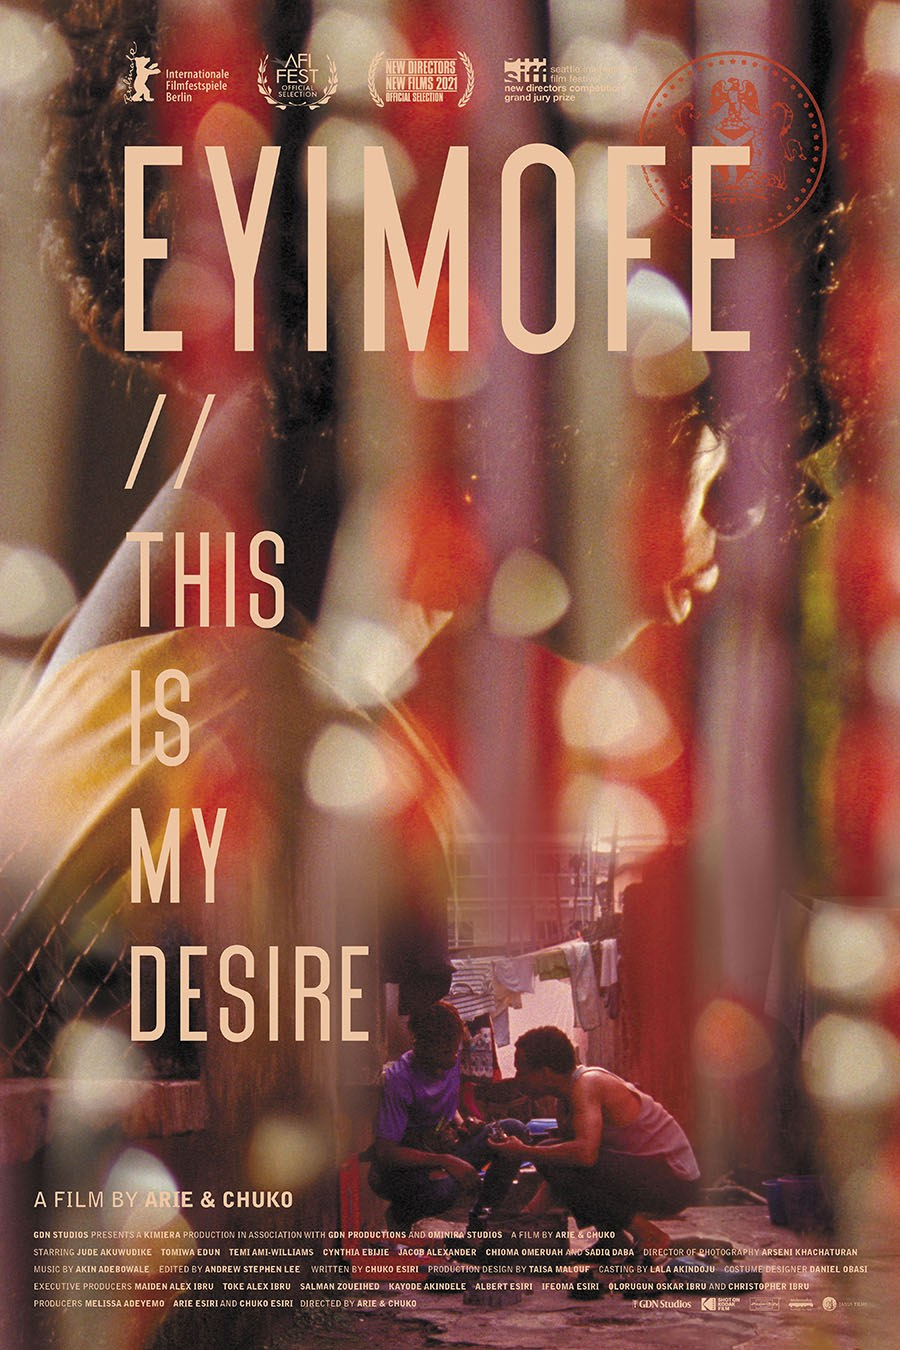 Eyimofe (This Is My Desire) film poster